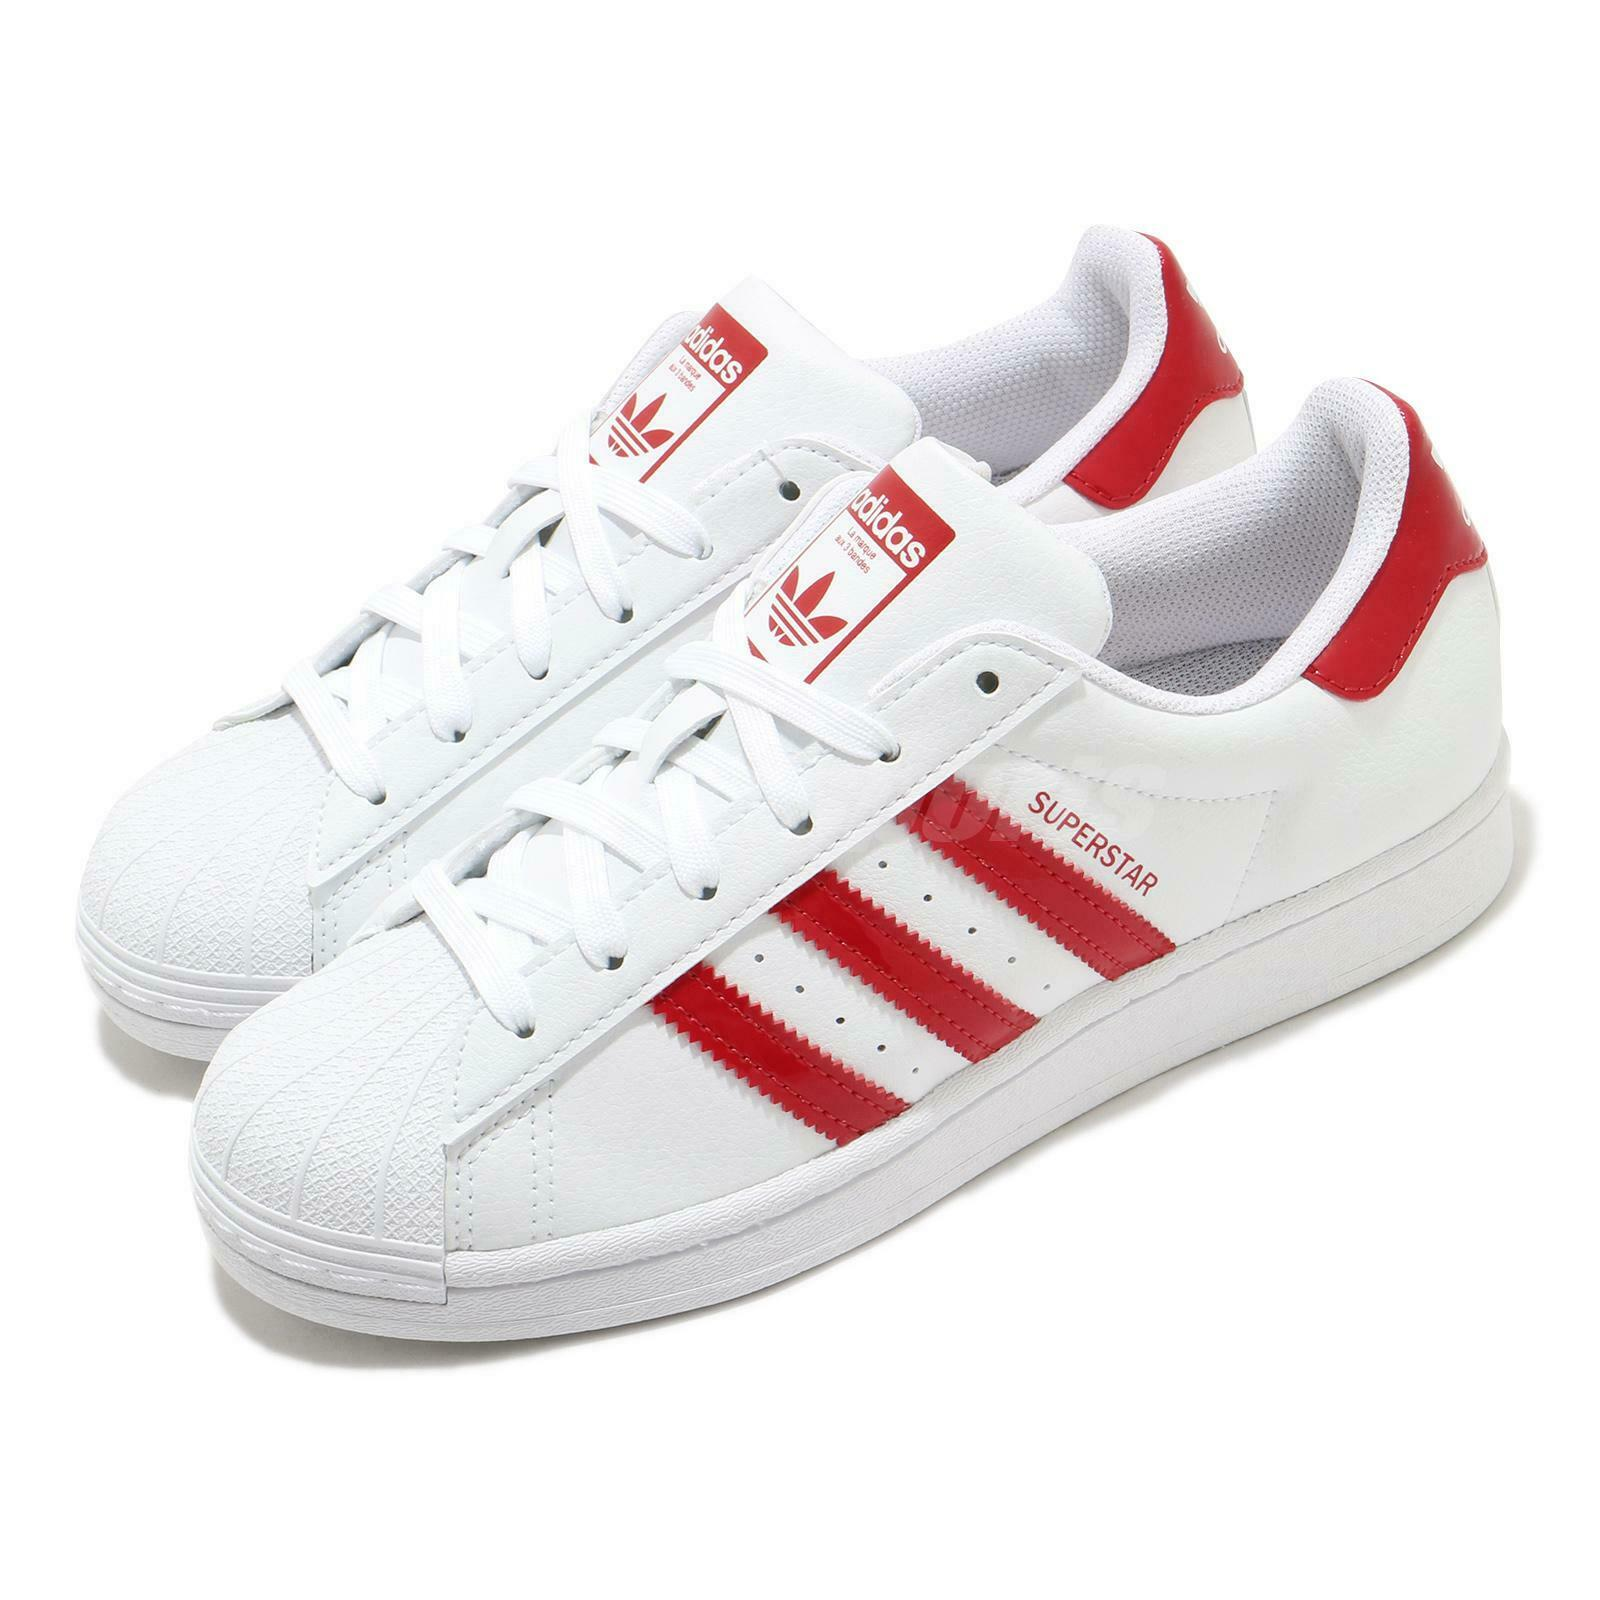 sólido Bienes choque  adidas Originals Superstar W Ladies Sneaker Shoes Casual Trainers 2 US 10 -  EU 42 2/3 White S78955 for sale online | eBay